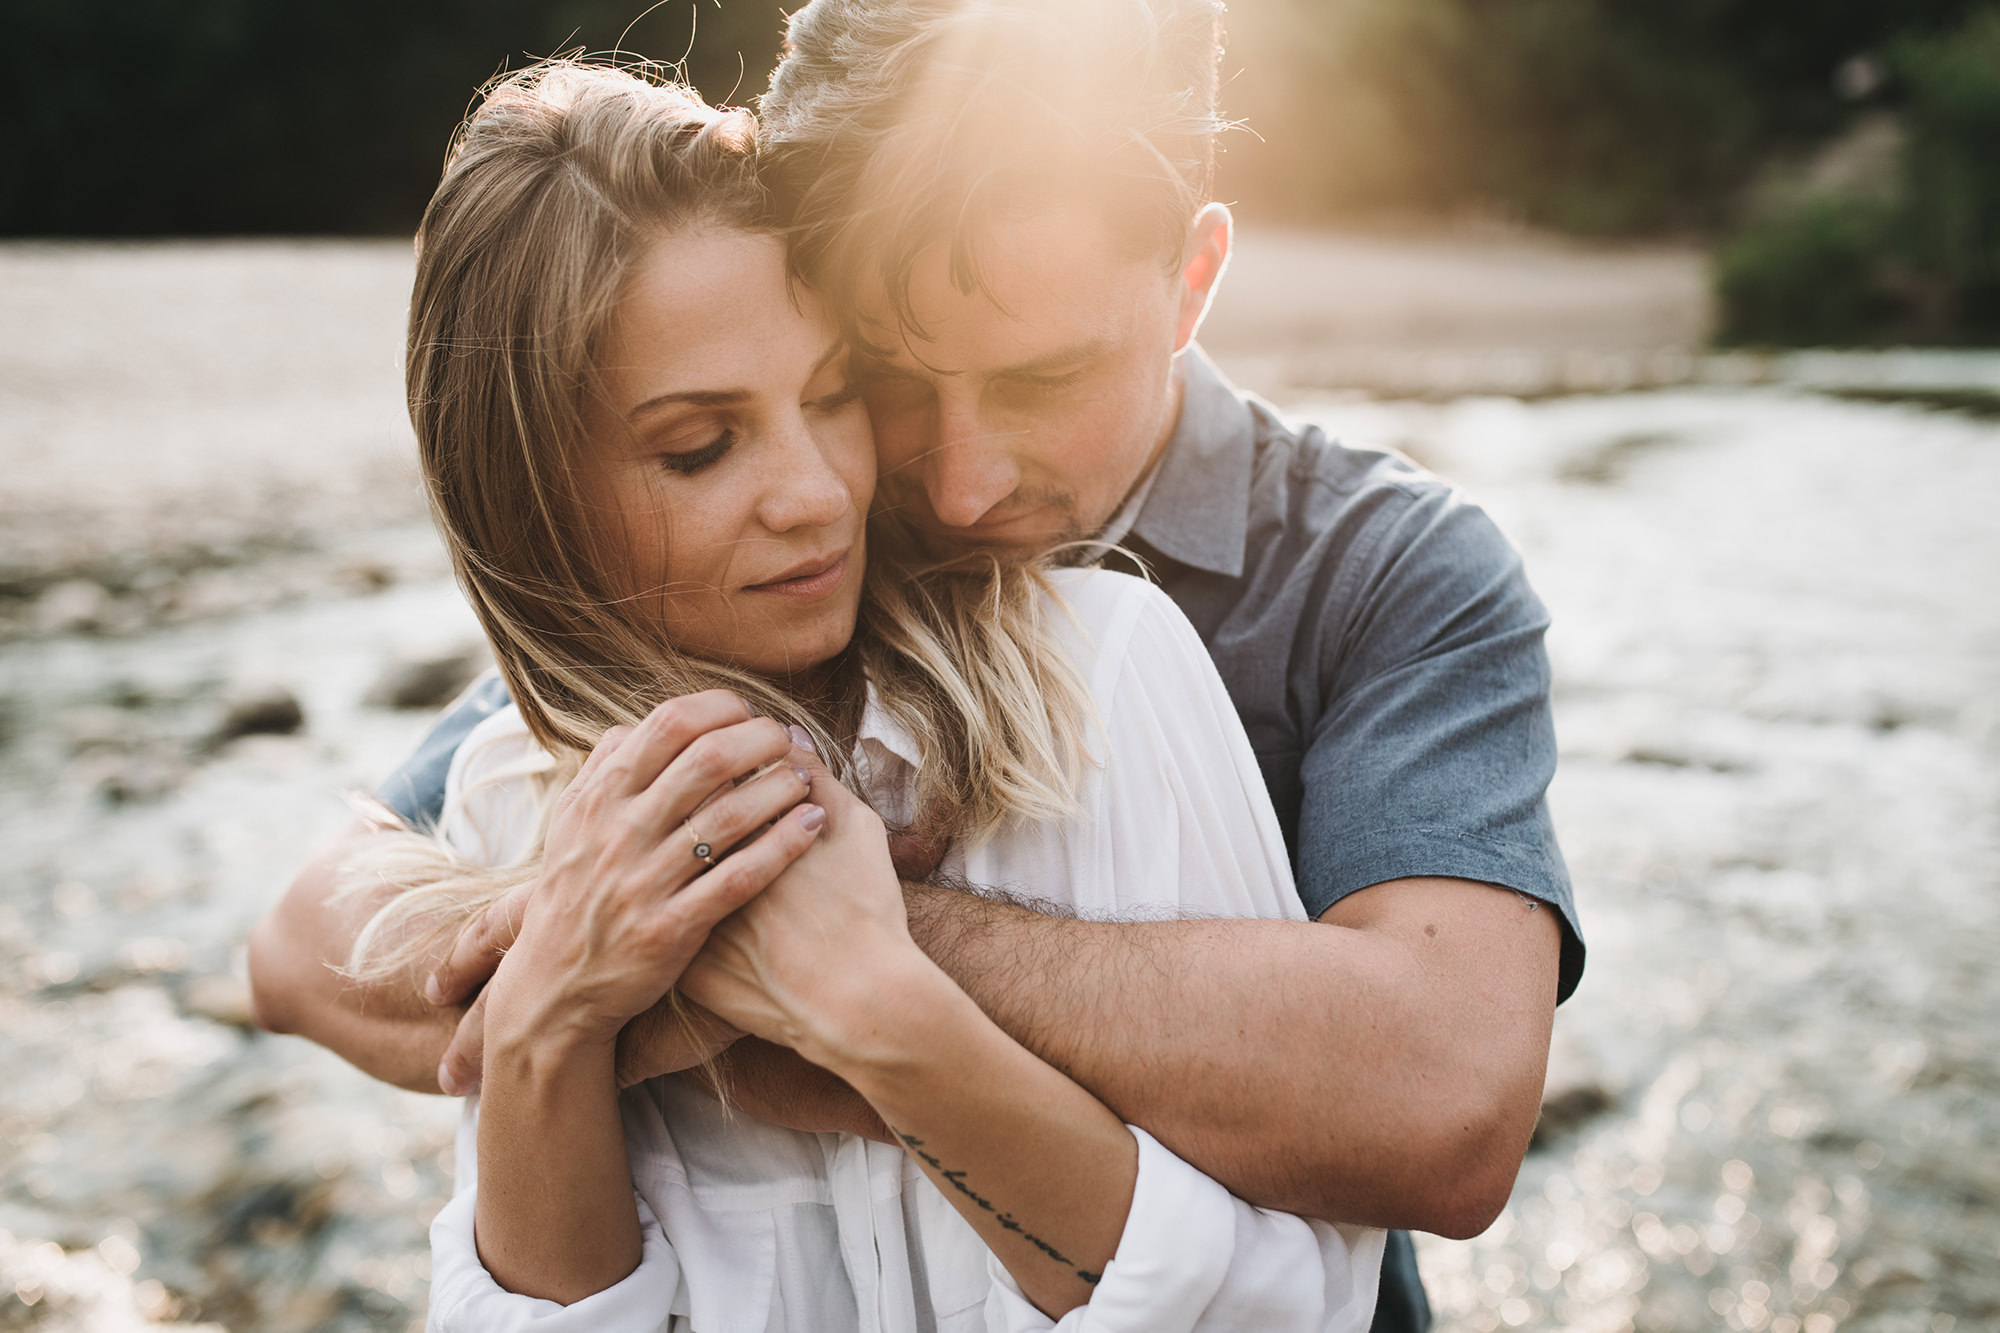 engagement_session_ardeche_river_C+M_neupapphotography-30.jpg